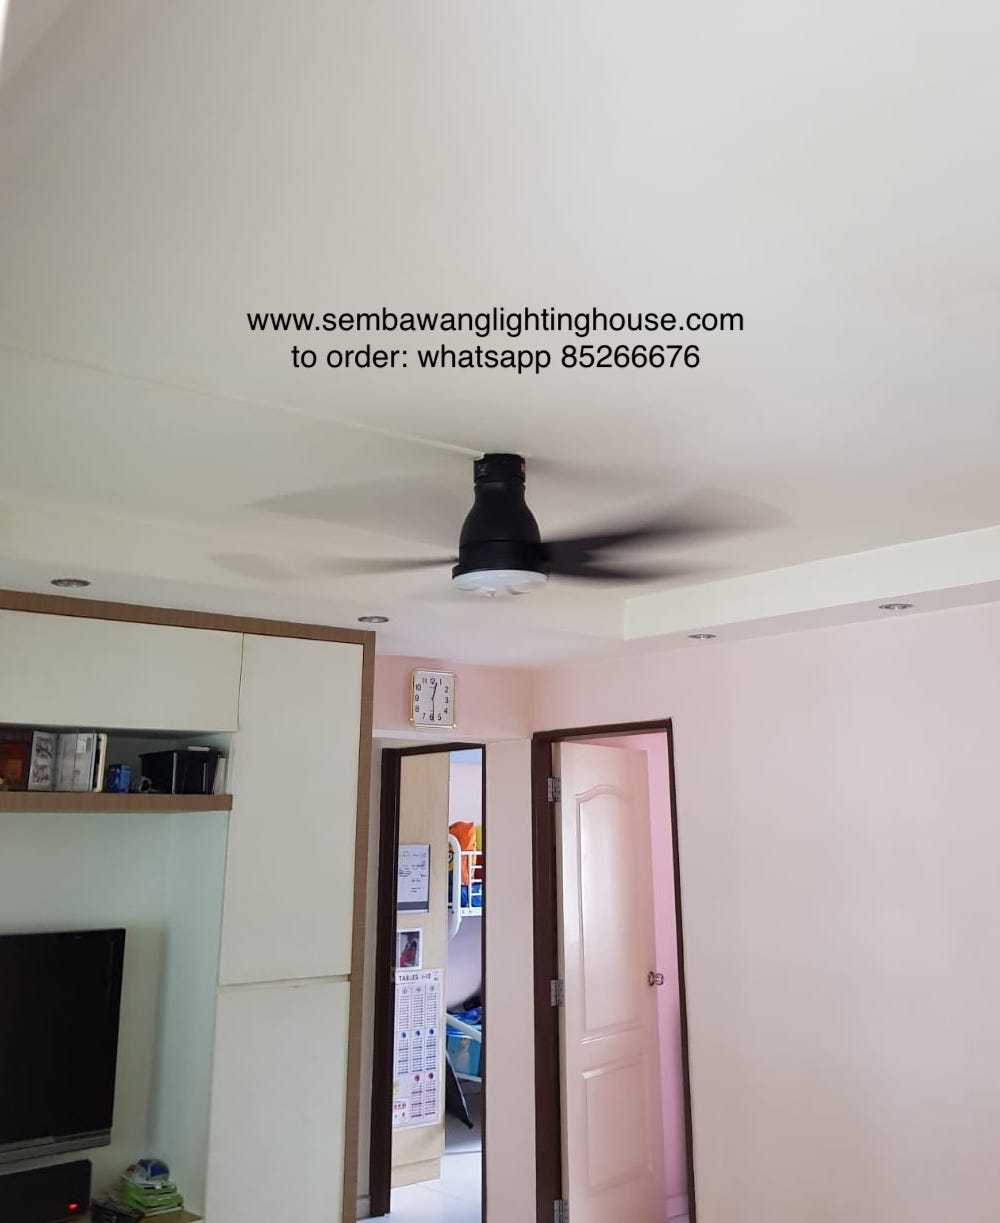 KDK U60FW Ceiling Fan Black in 4 Room HDB